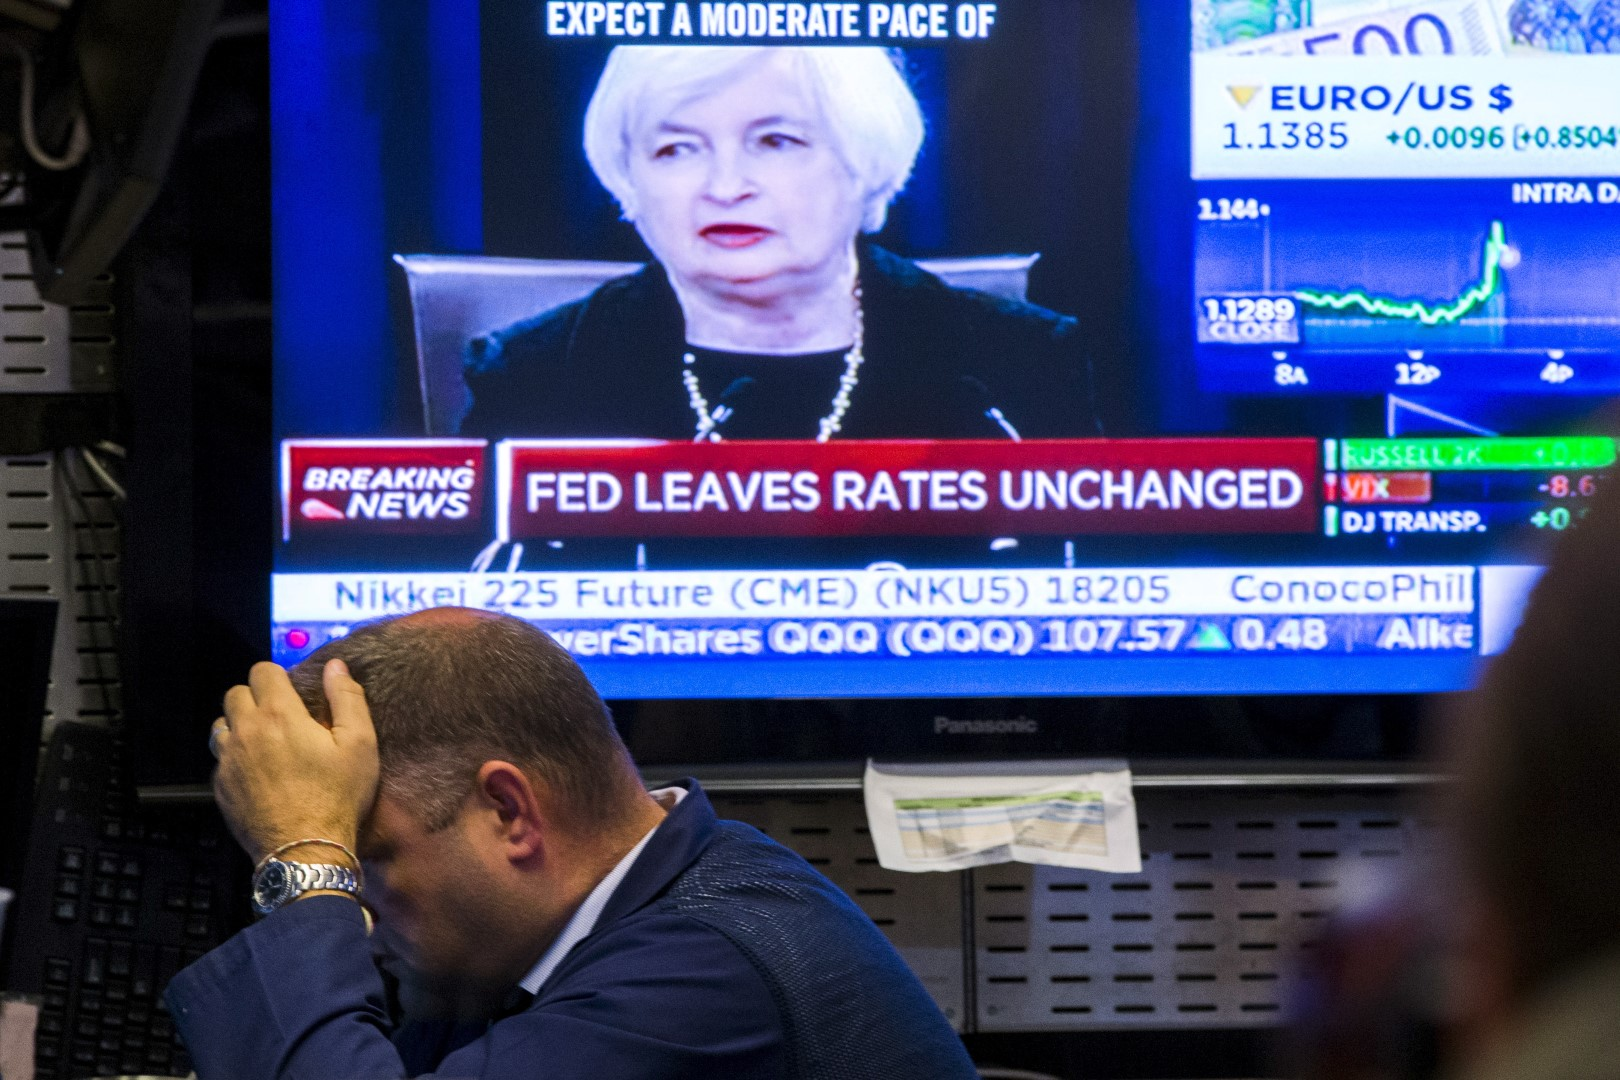 A trader works underneath a television screen showing Federal Reserve Chair Janet Yellen announcing that the Federal Reserve will leave interest rates unchanged on the floor of the New York Stock Exchange in New York September 17, 2015. REUTERS/Lucas Jackson - RTS1MCU